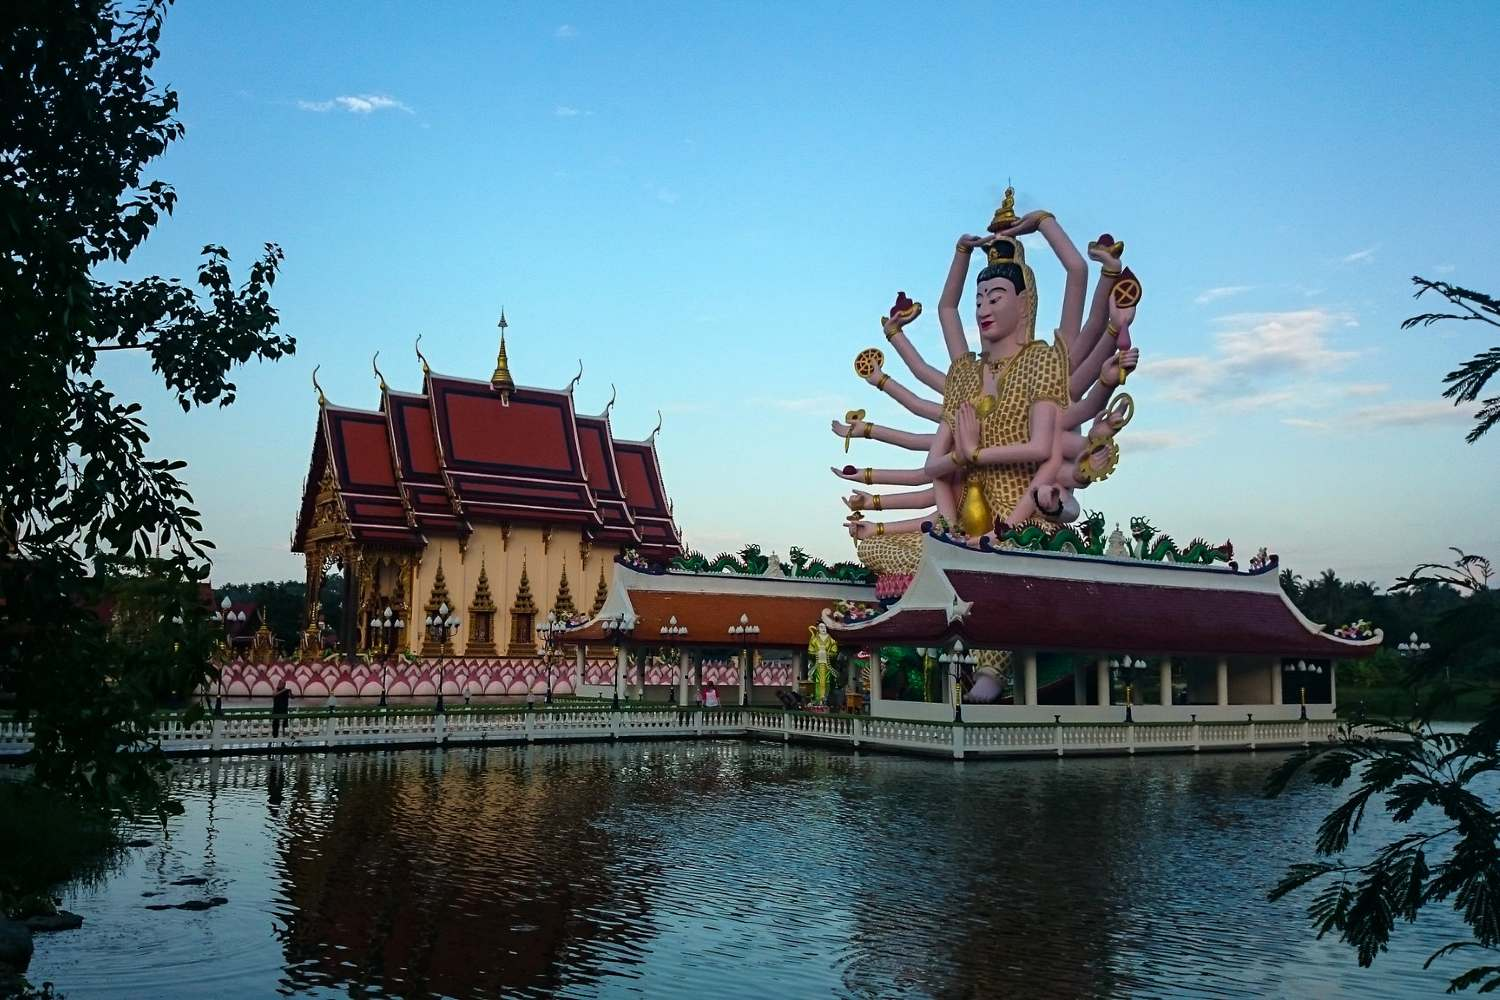 colorful 16 handy Buddha of the Wat Plai Leam Temple on Koh Samui in Thailand